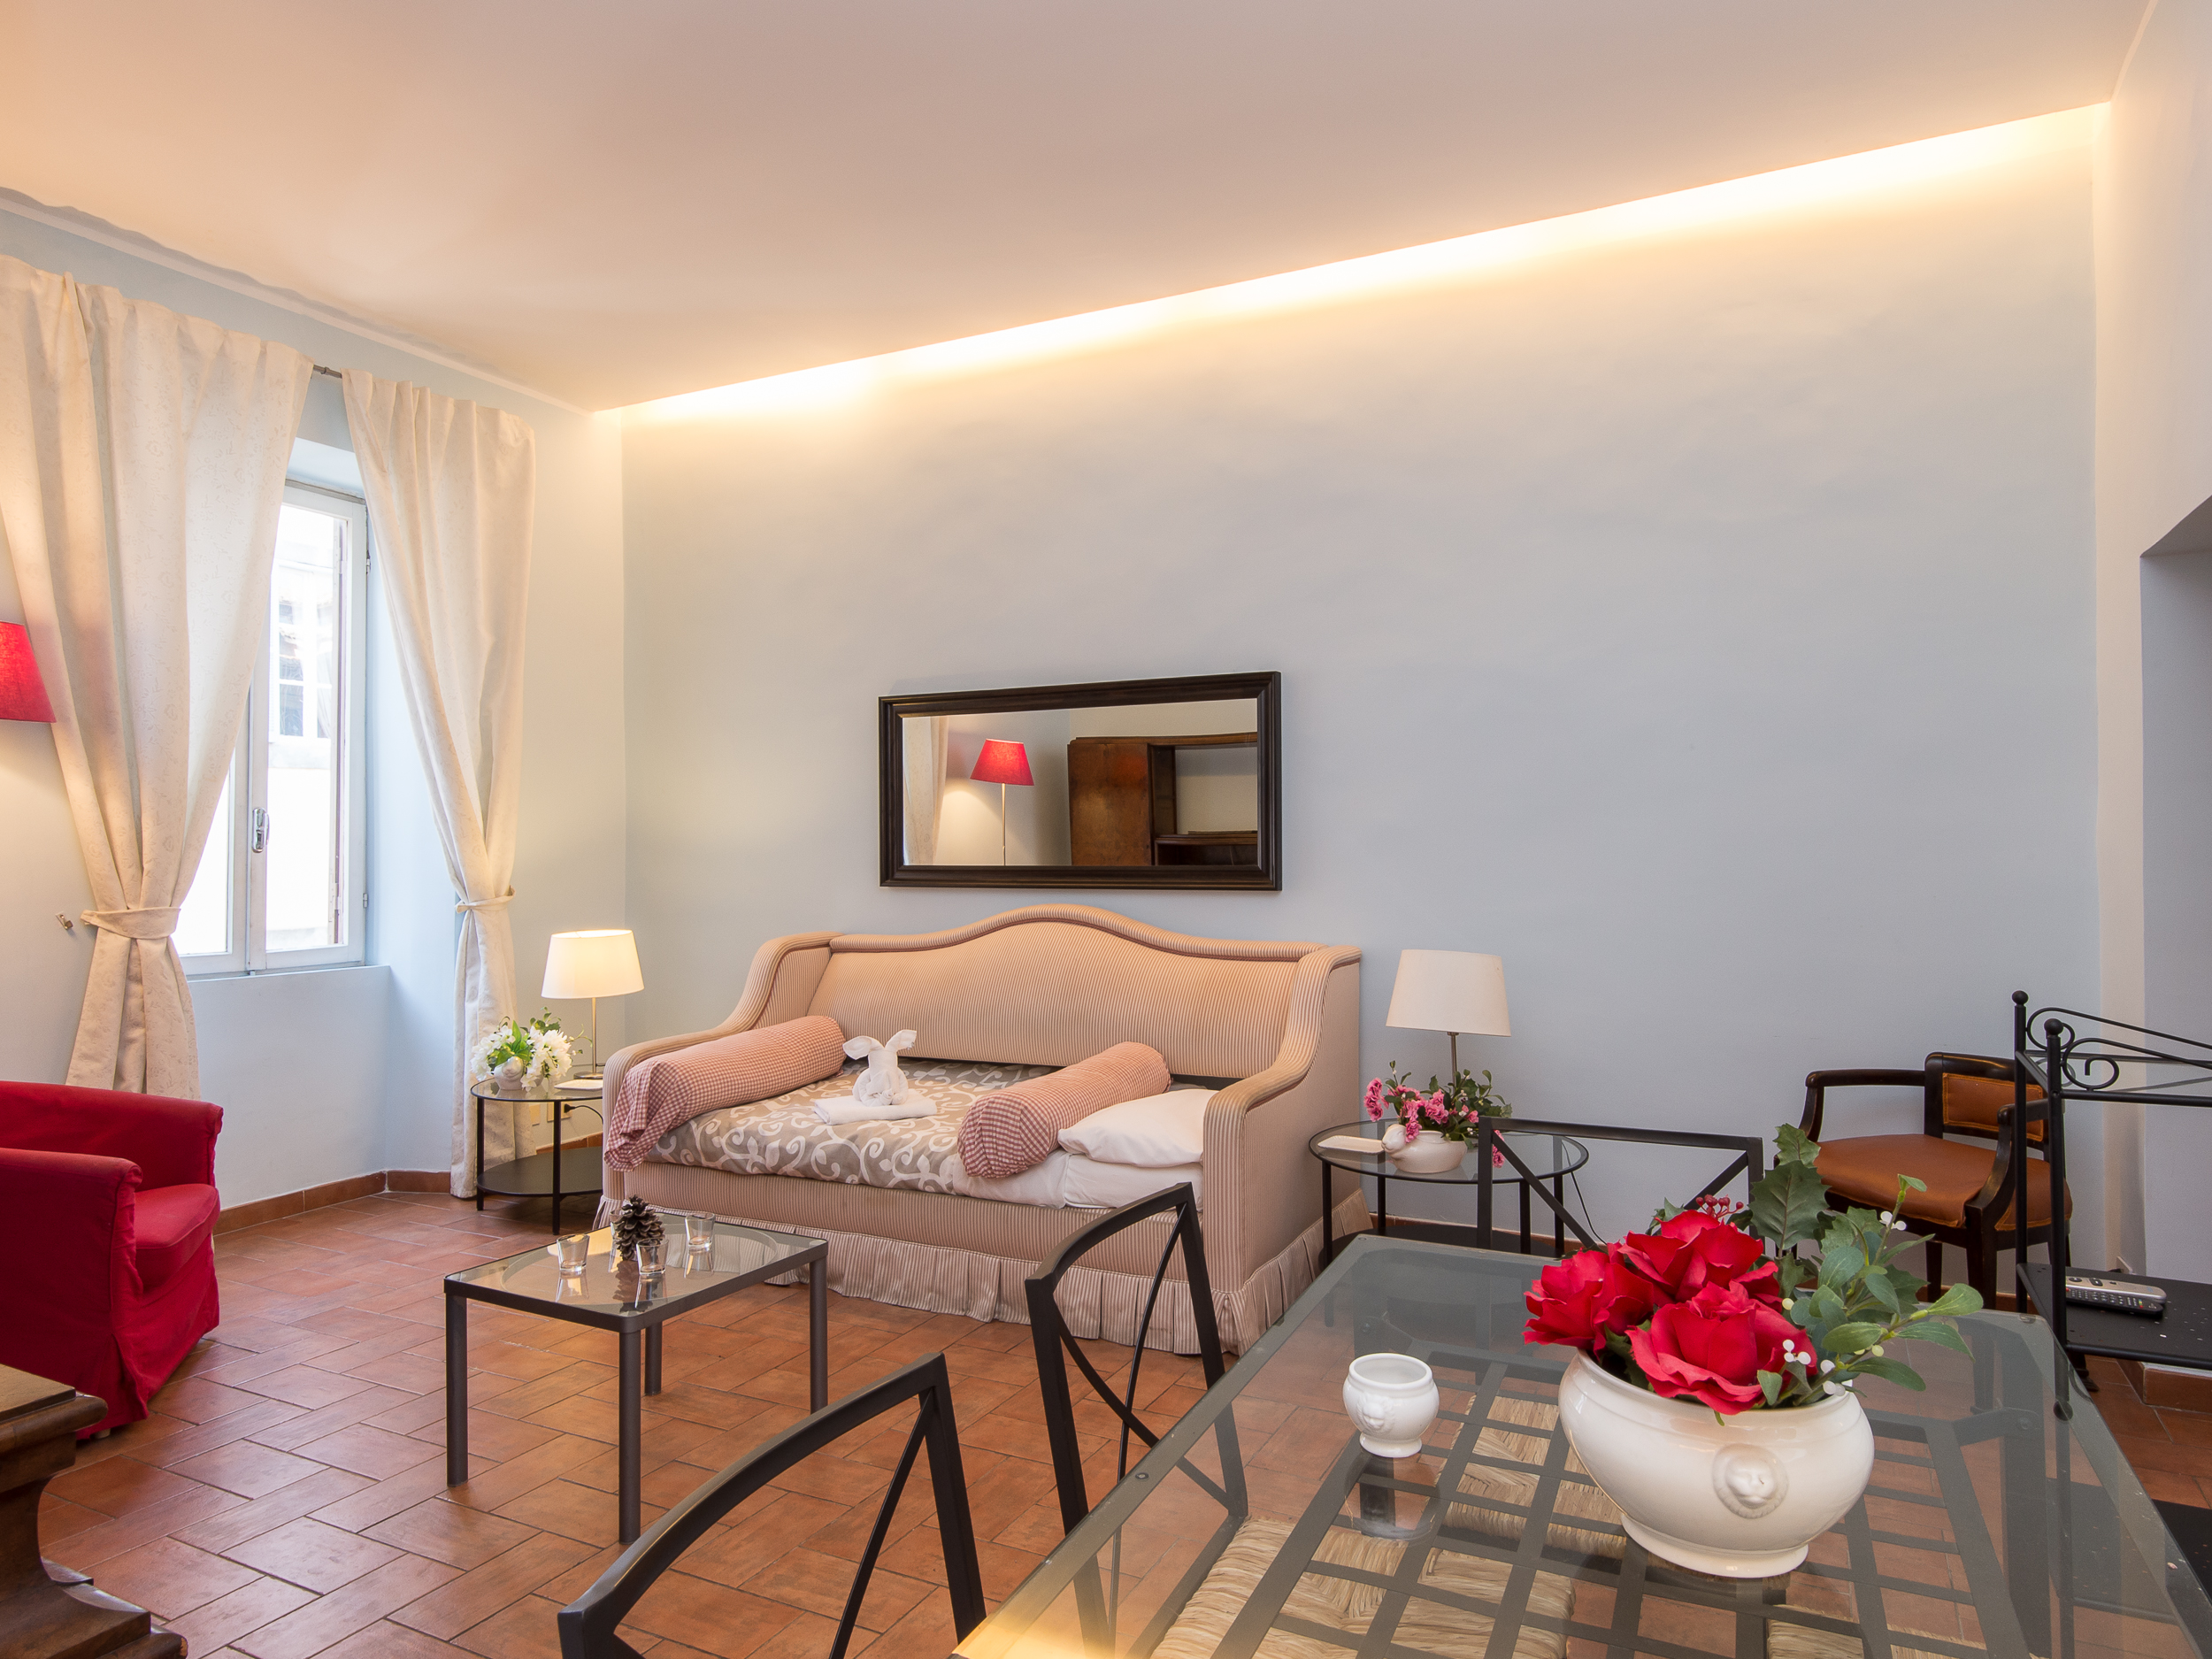 Rome Centro Storico Italie Appartement Corso Central IT5700 798 1